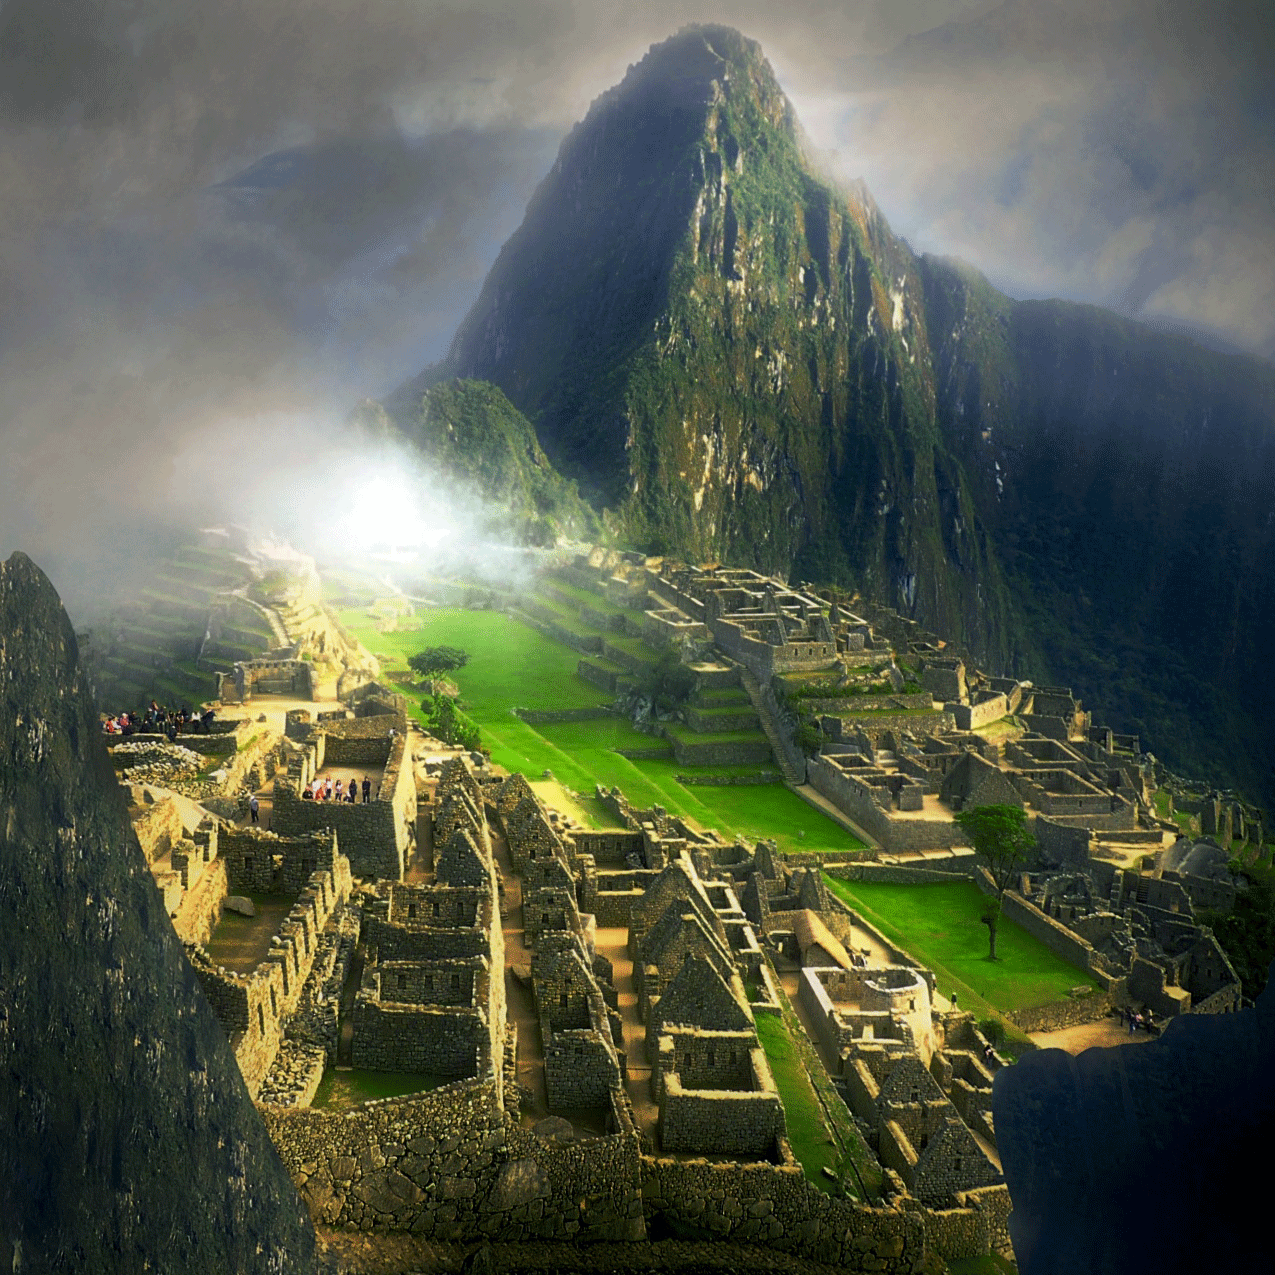 Photo of Machu Picchu, Peru courtesy of Kai Stachowiak.